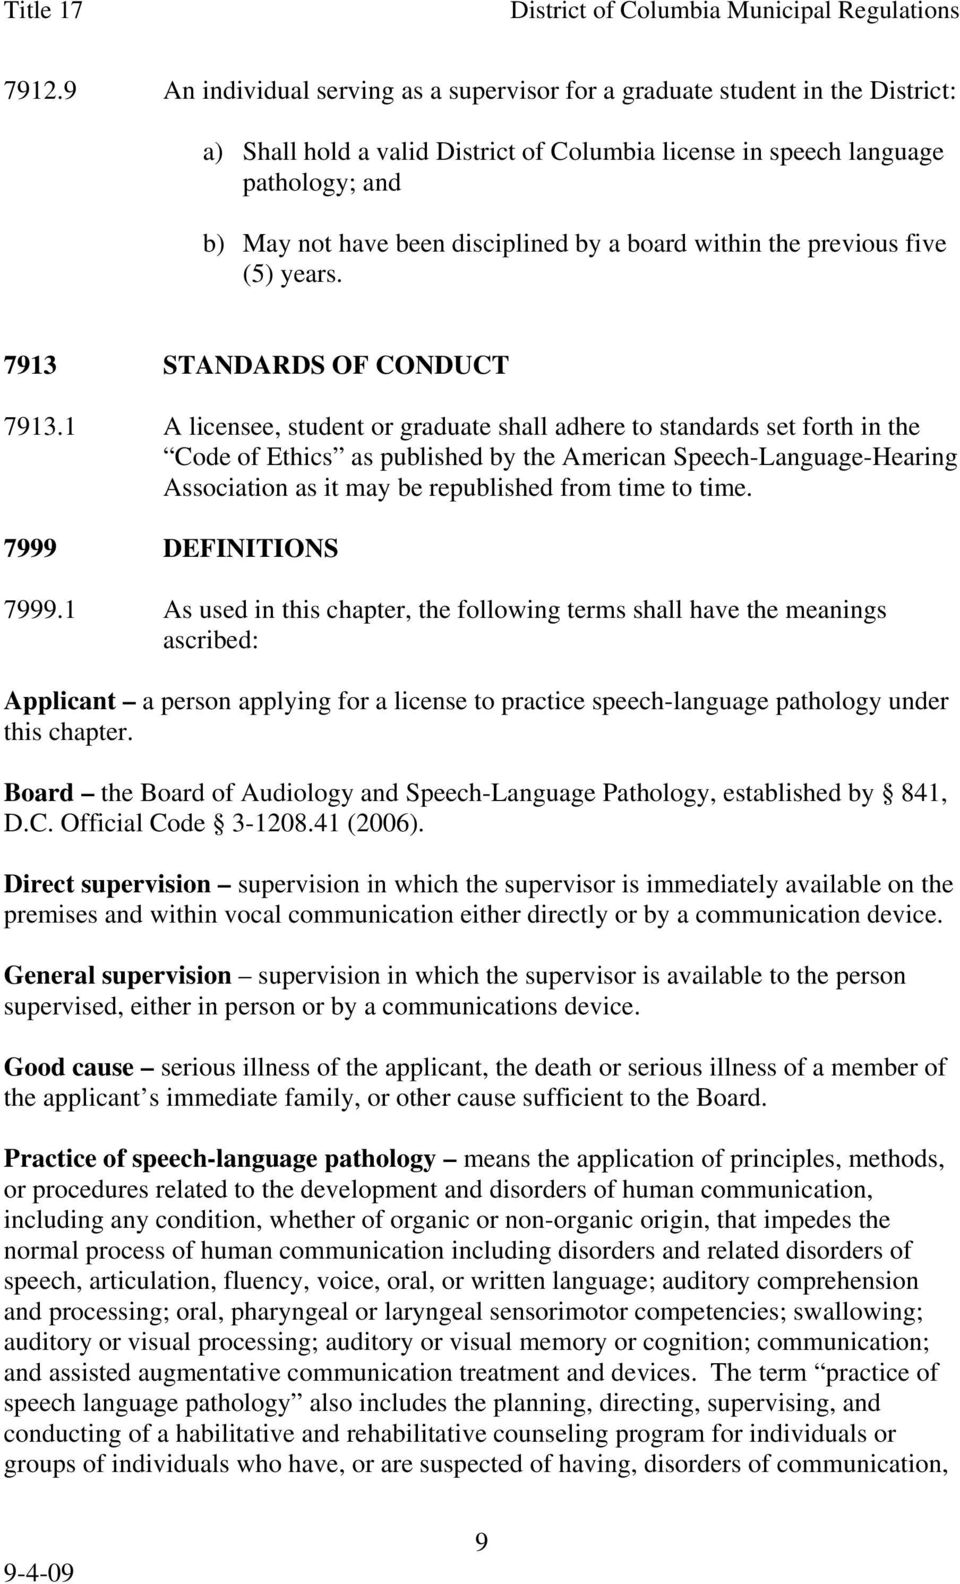 1 A licensee, student or graduate shall adhere to standards set forth in the Code of Ethics as published by the American Speech-Language-Hearing Association as it may be republished from time to time.